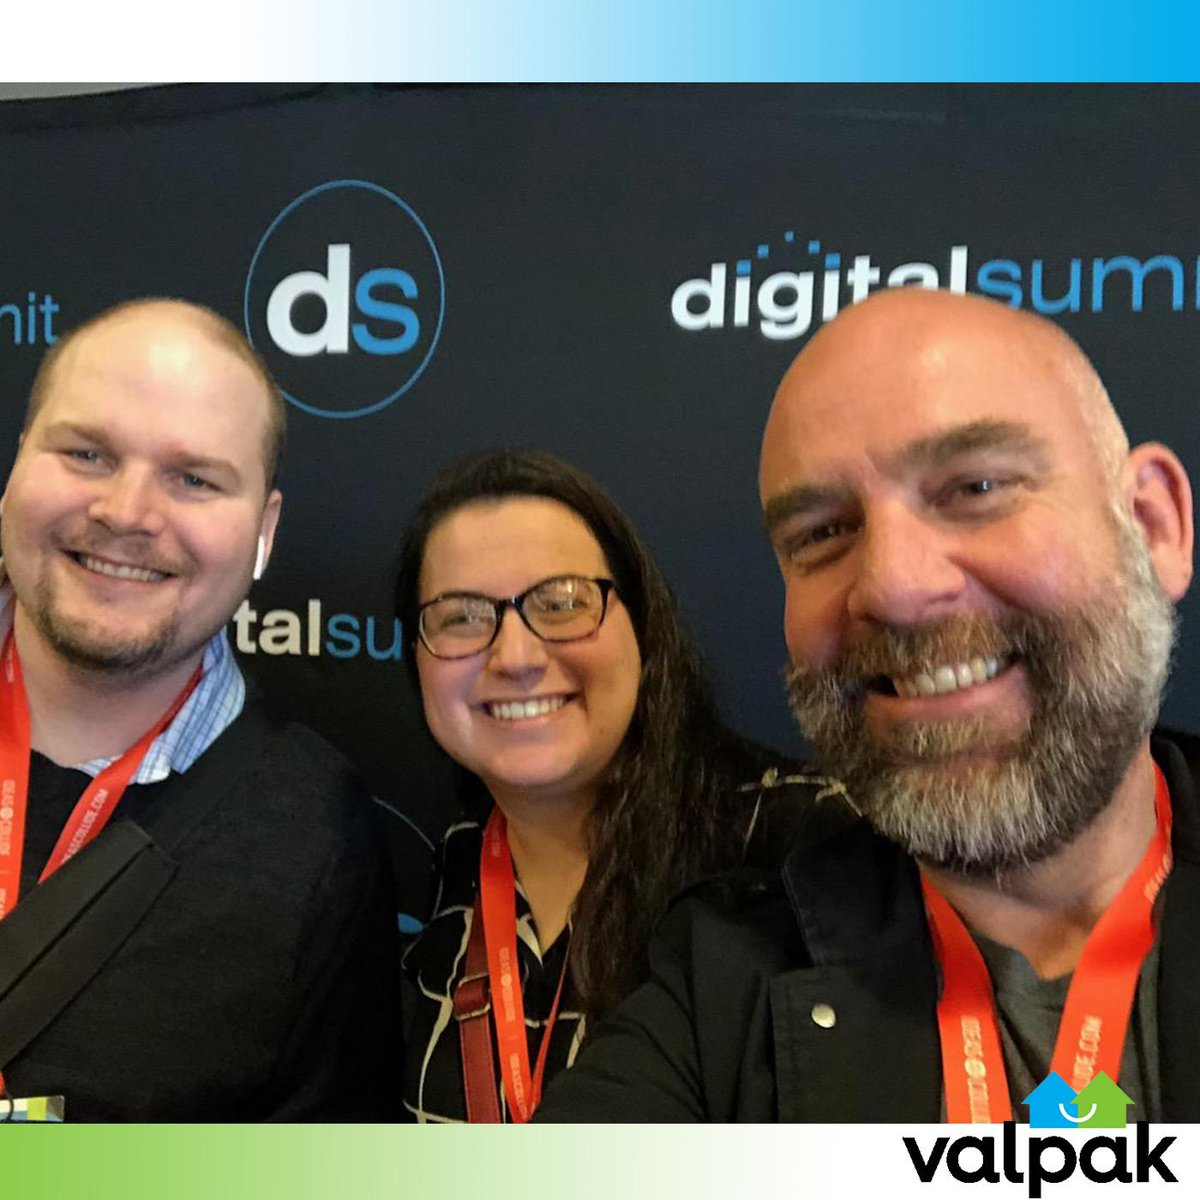 Earlier this week, some of our digital team had the opportunity to attend the @DigitalSummits Series in Phoenix! #DSPHX #DigitalSummit #DigitalSummit2019<br>http://pic.twitter.com/yMTQFcsJ3I